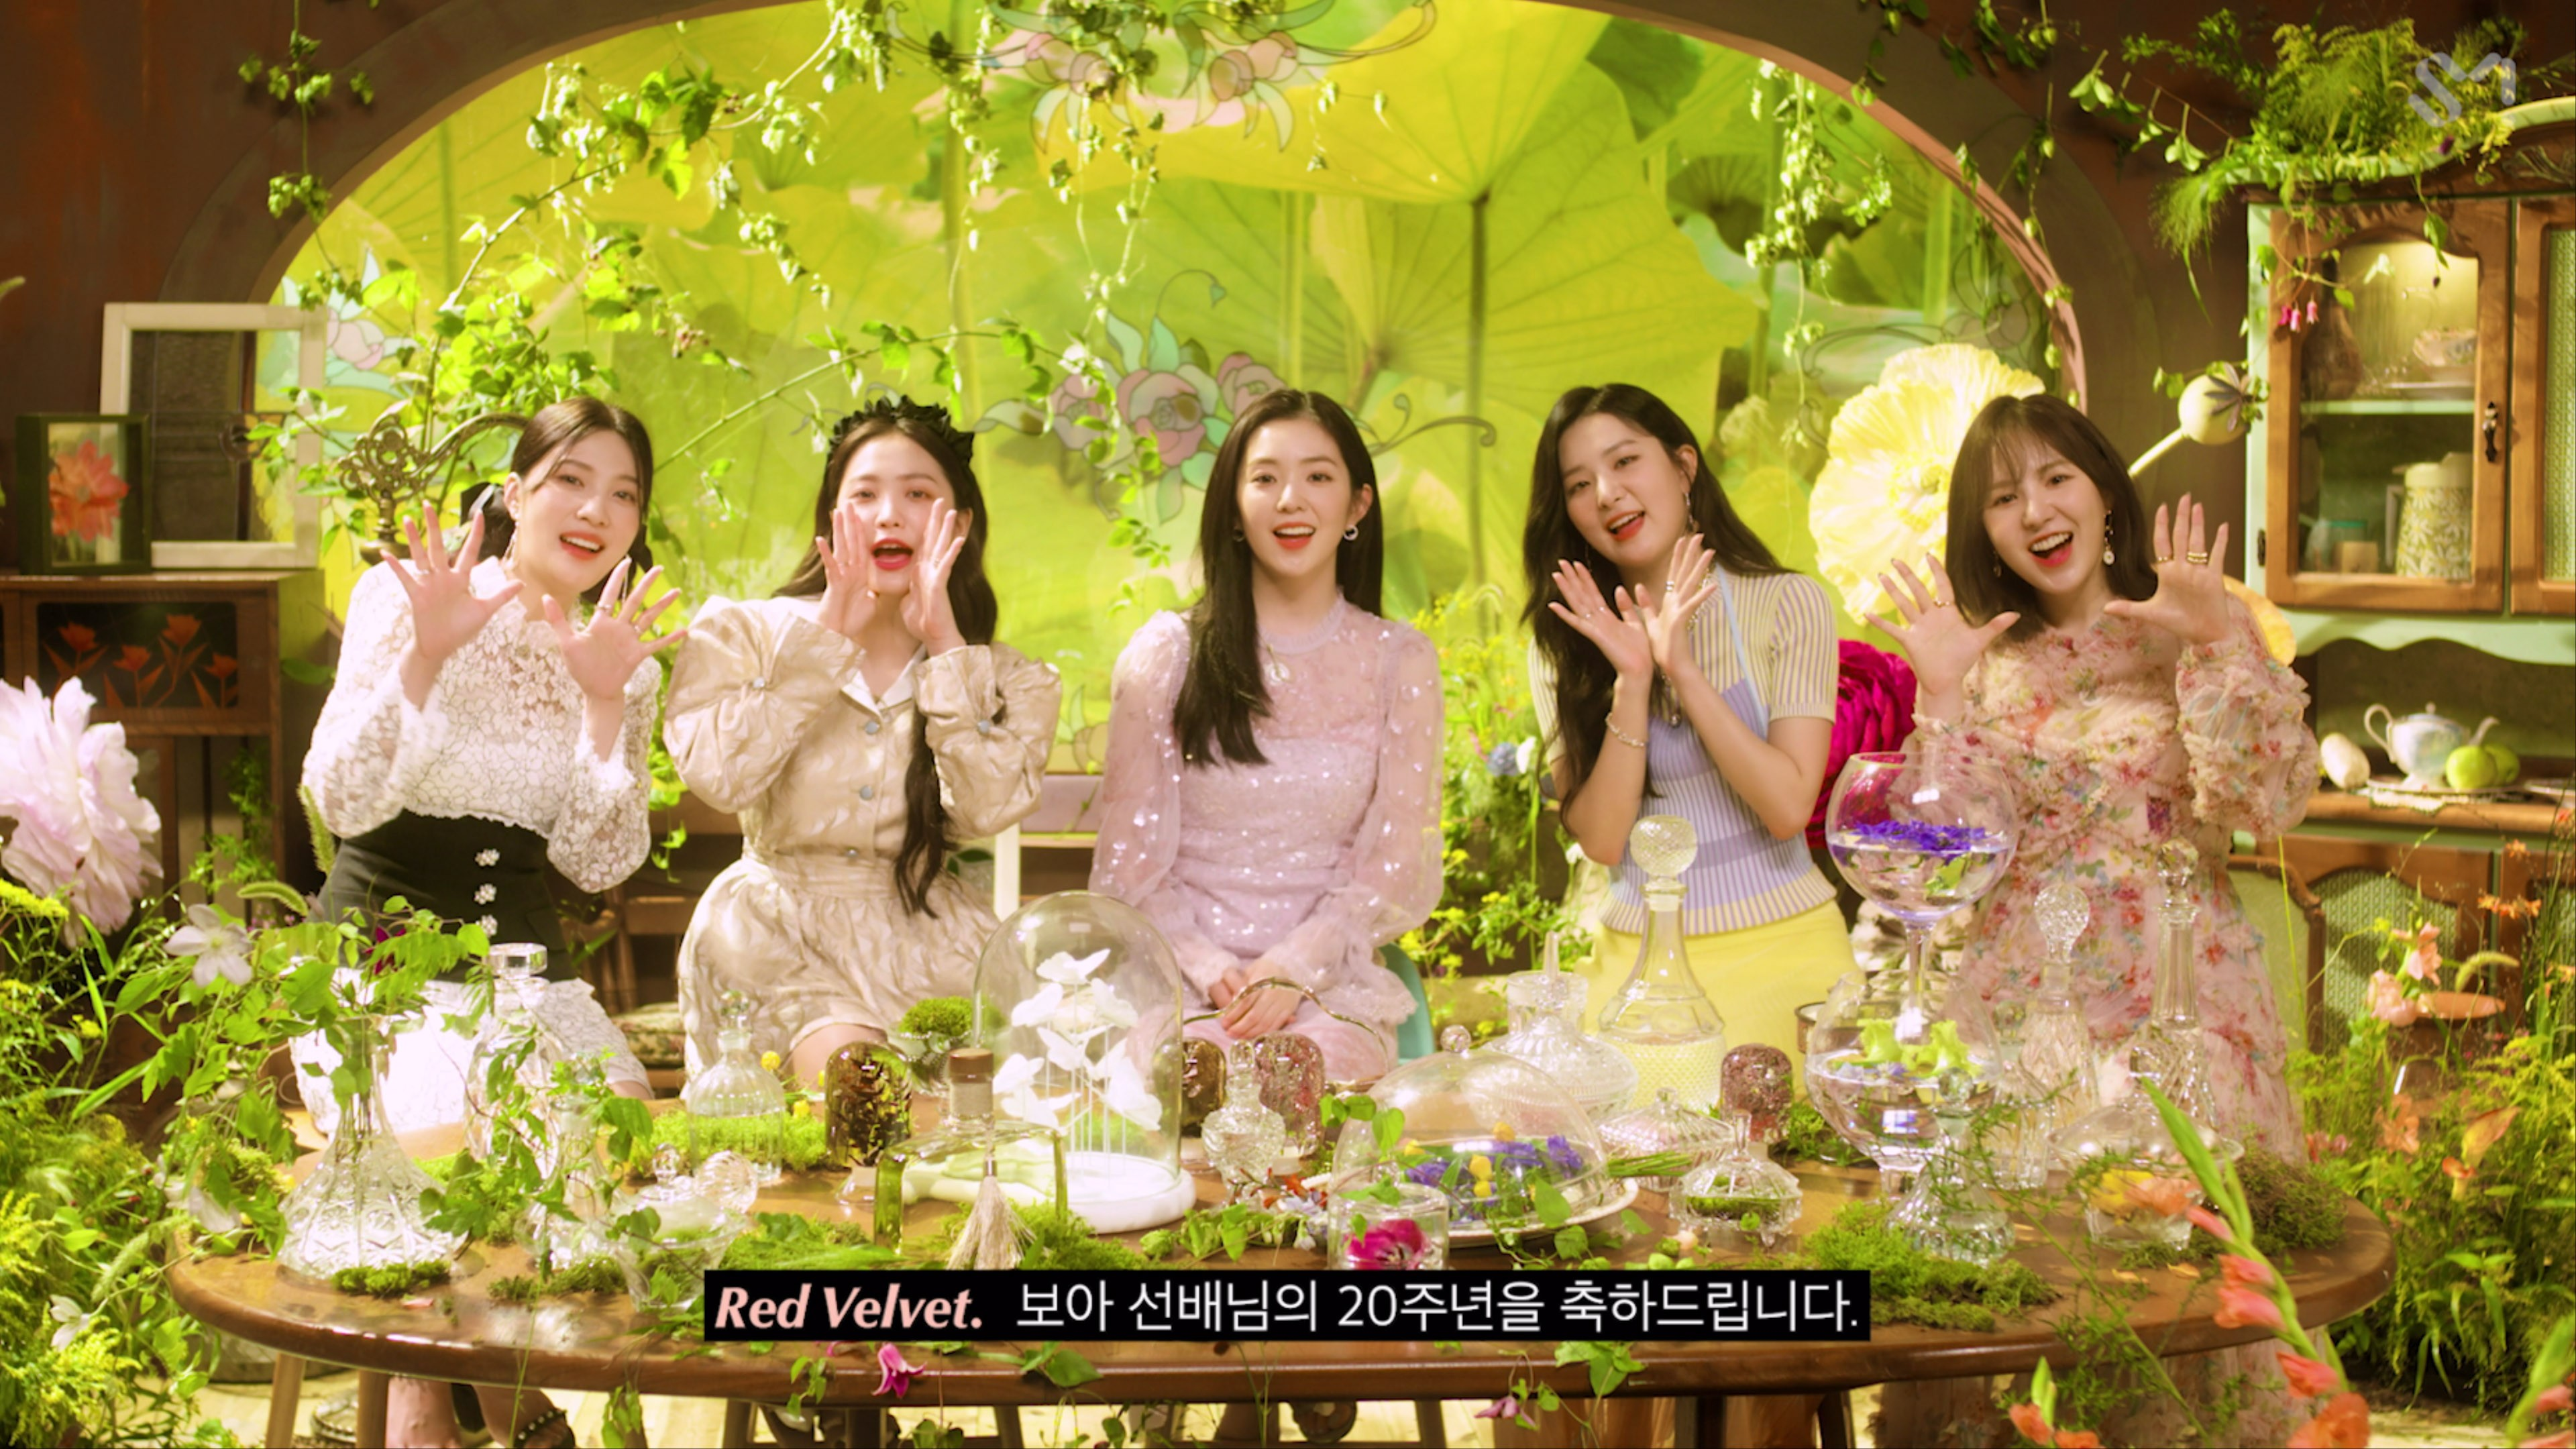 [STATION/Our Beloved BoA #4] Red Velvet 레드벨벳 Interview #비하인더스테이션